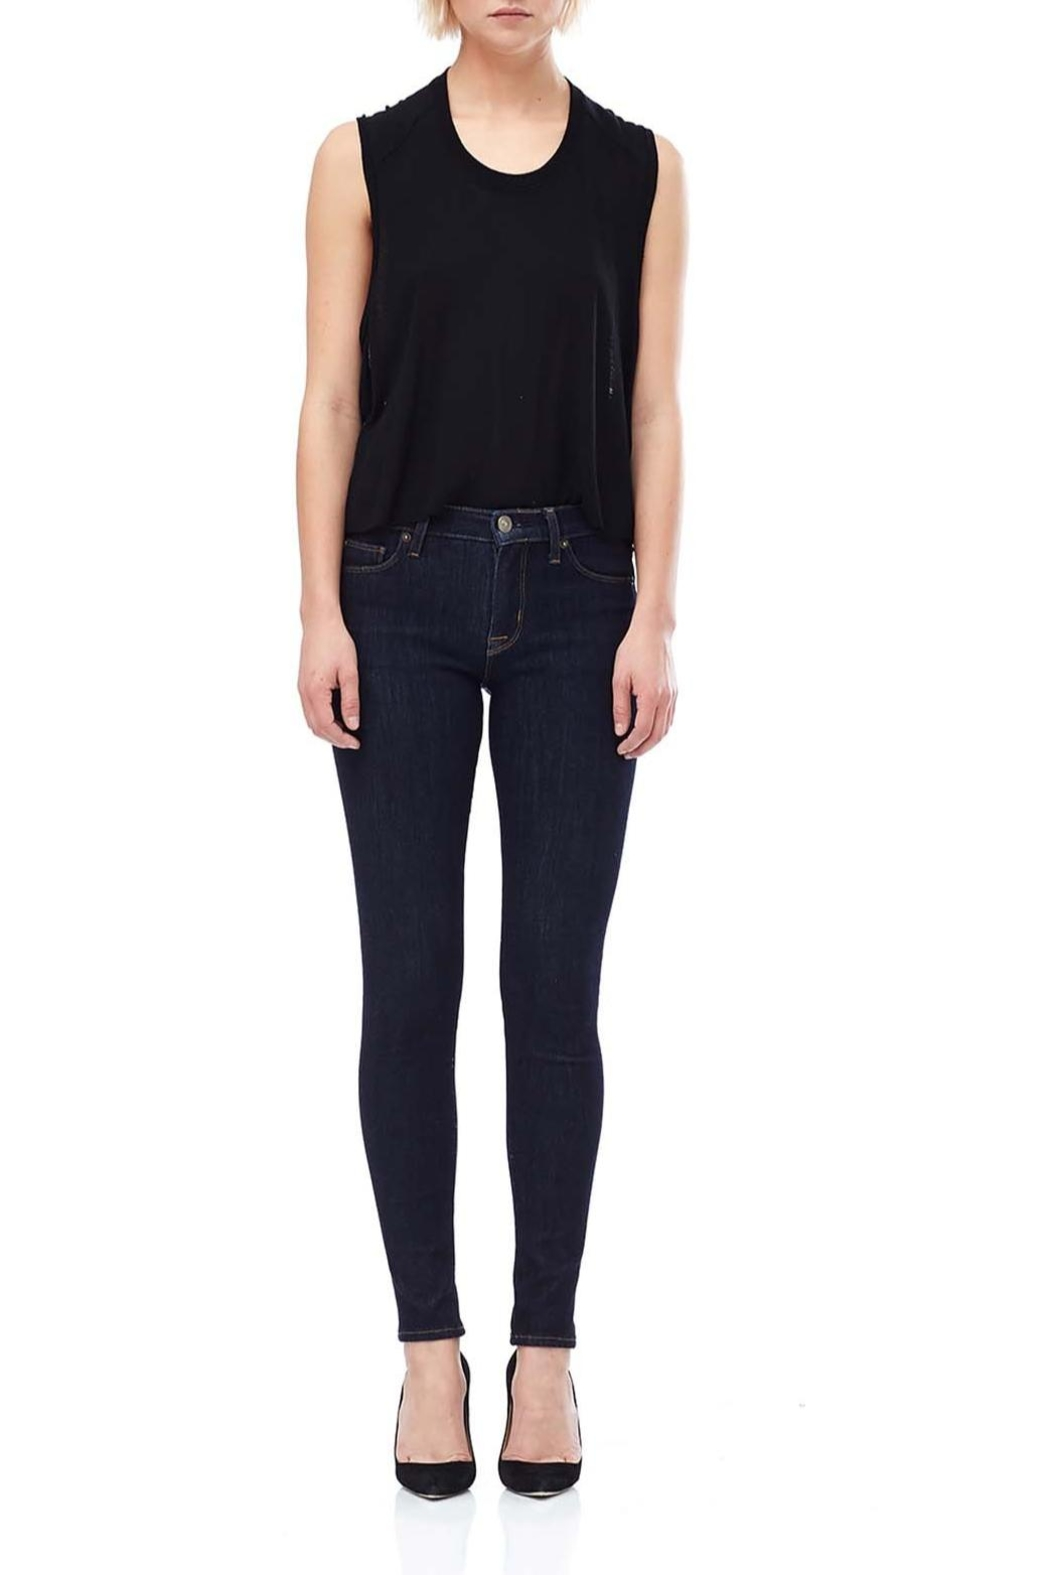 Hudson Jeans Timeless Essential Skinny Jeans - Main Image